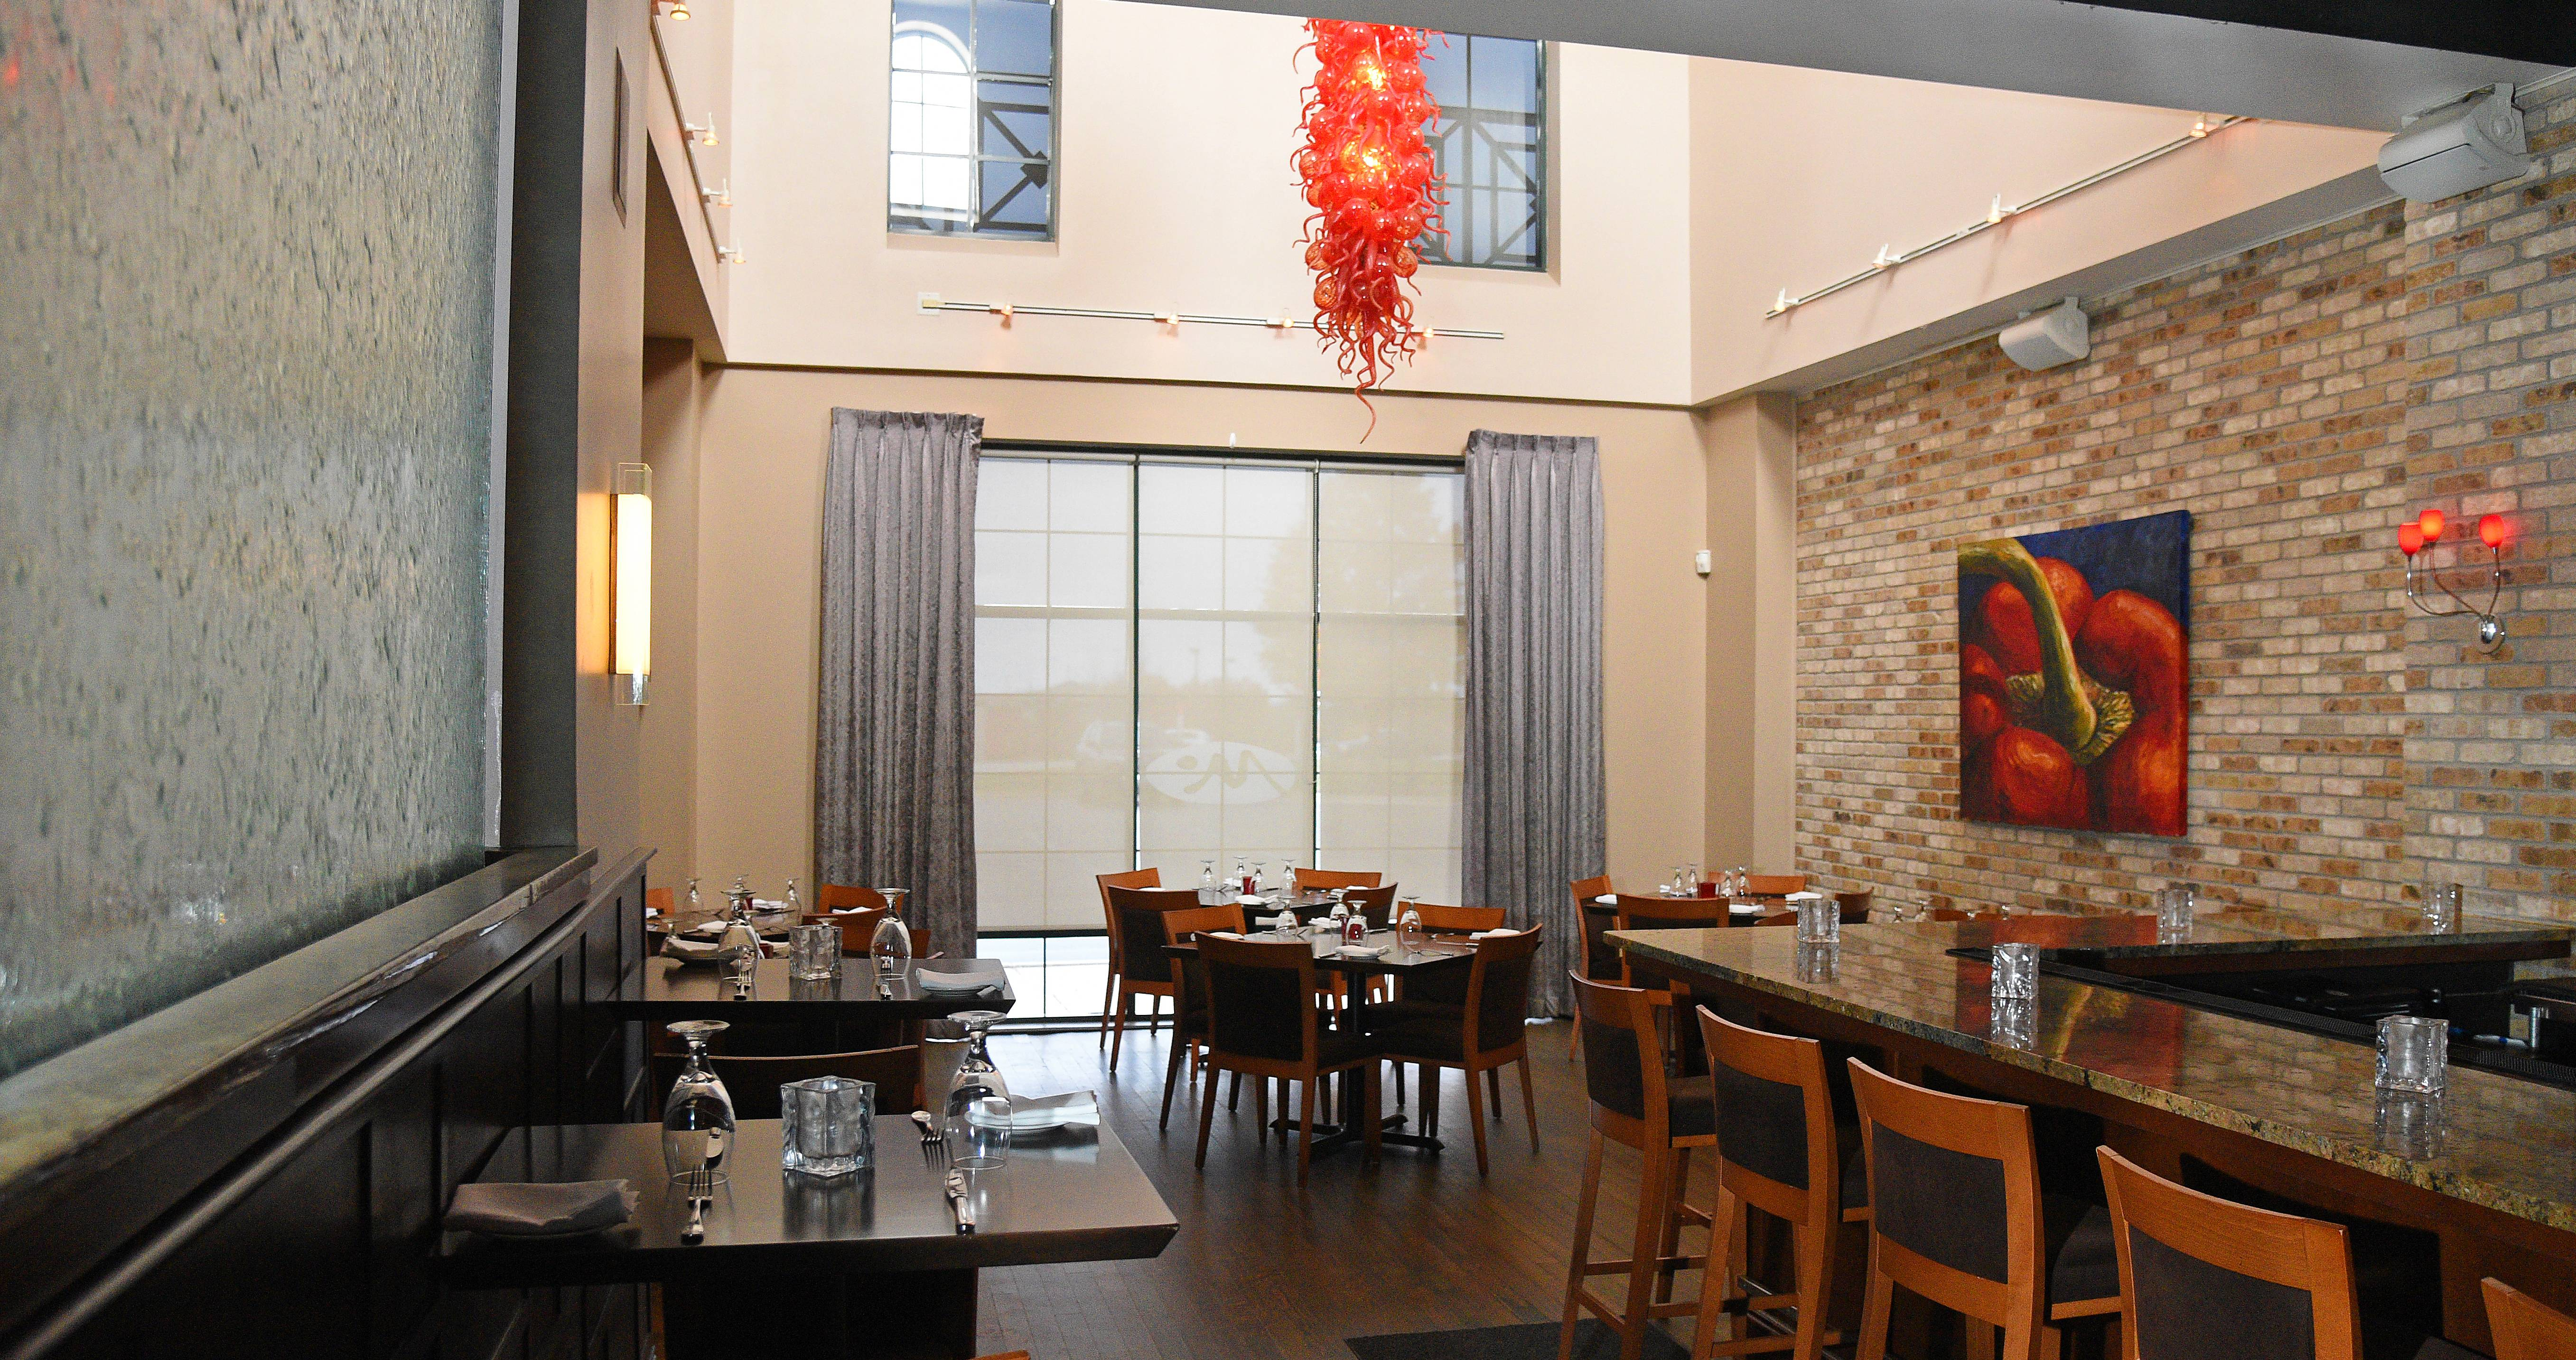 Wttws Check Please To Feature Restaurants From Geneva Algonquin